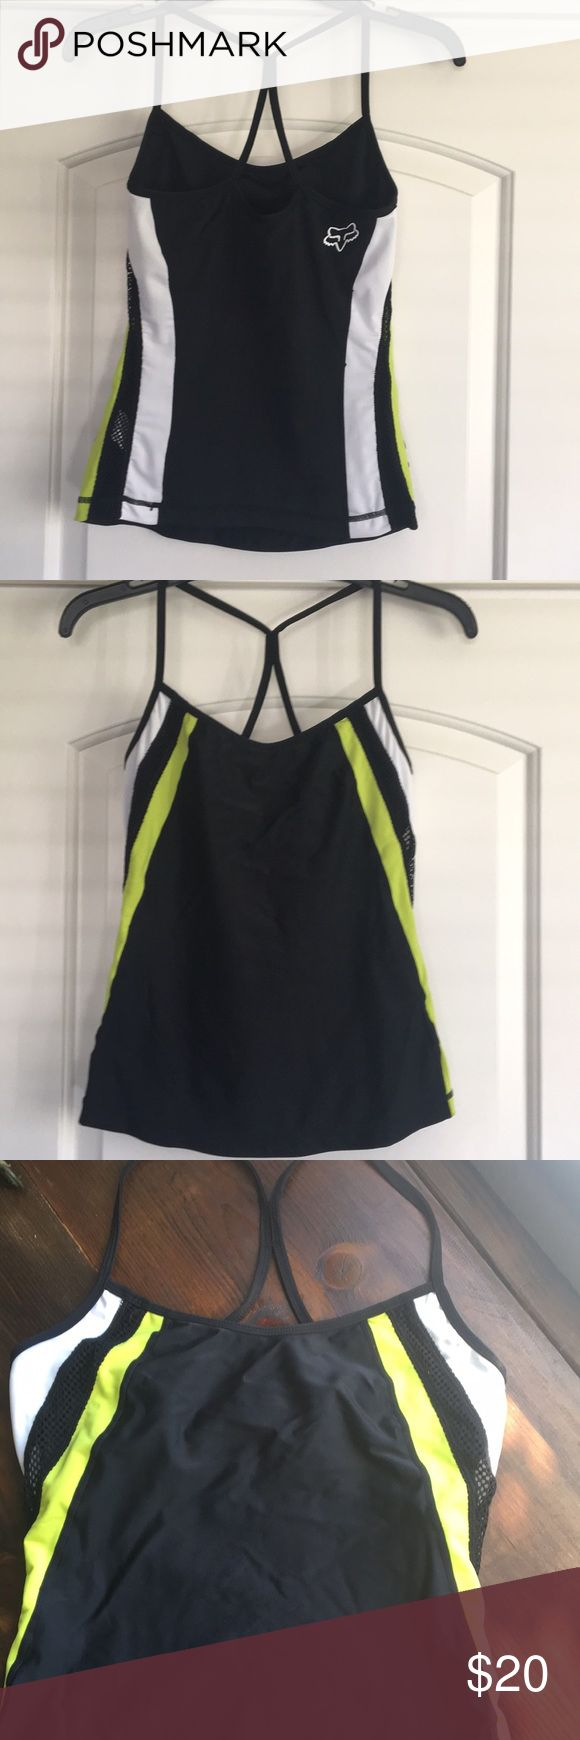 EUC Fox Swimsuit Tank Top Like New! Super sexy tank top made of swimsuit material. Built in bra. Mesh detail on sides. This top fits true to size. Fox Racing Swim Bikinis